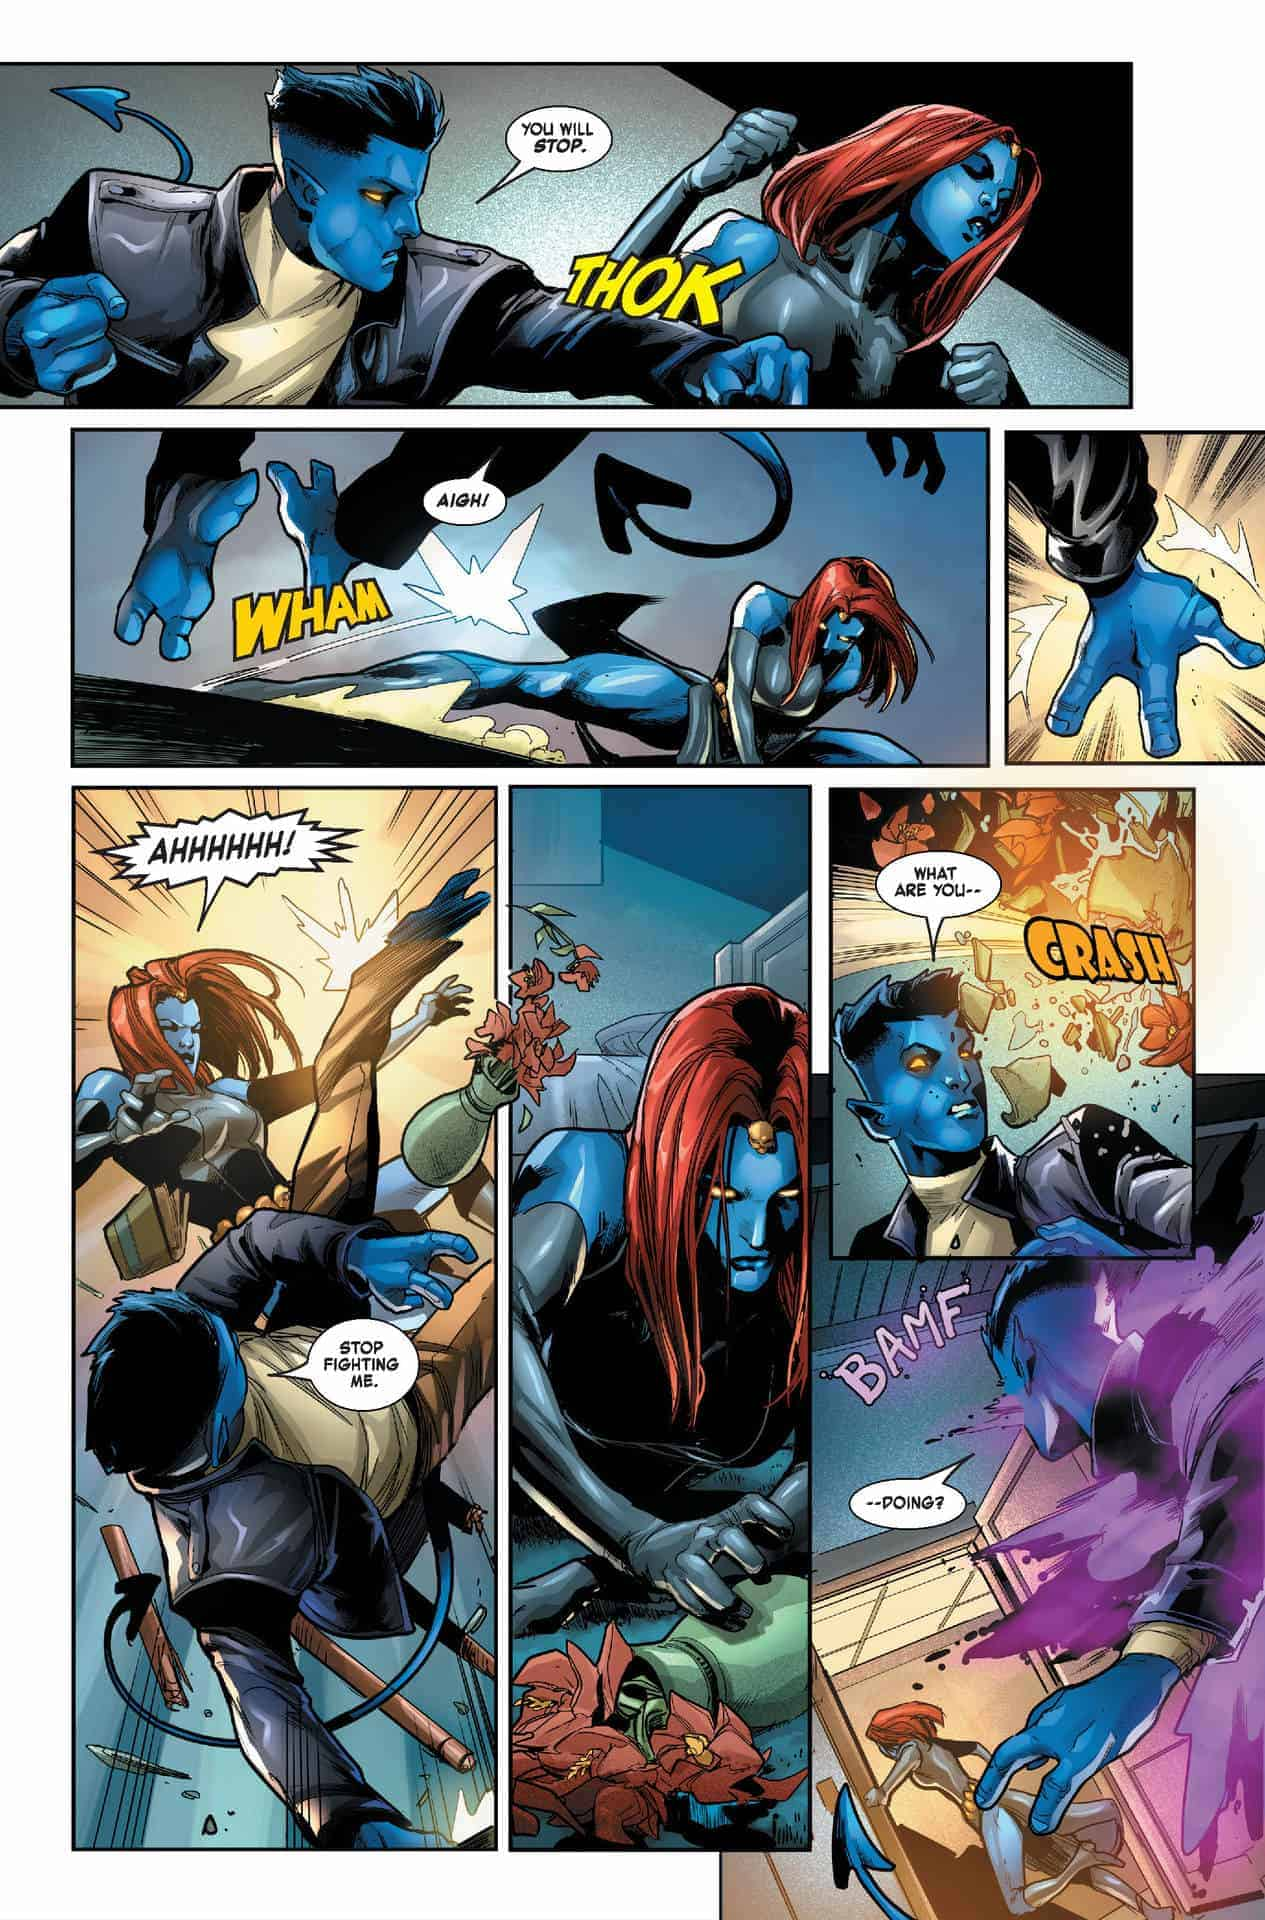 Age of X-Man: The Amazing Nightcrawler #3